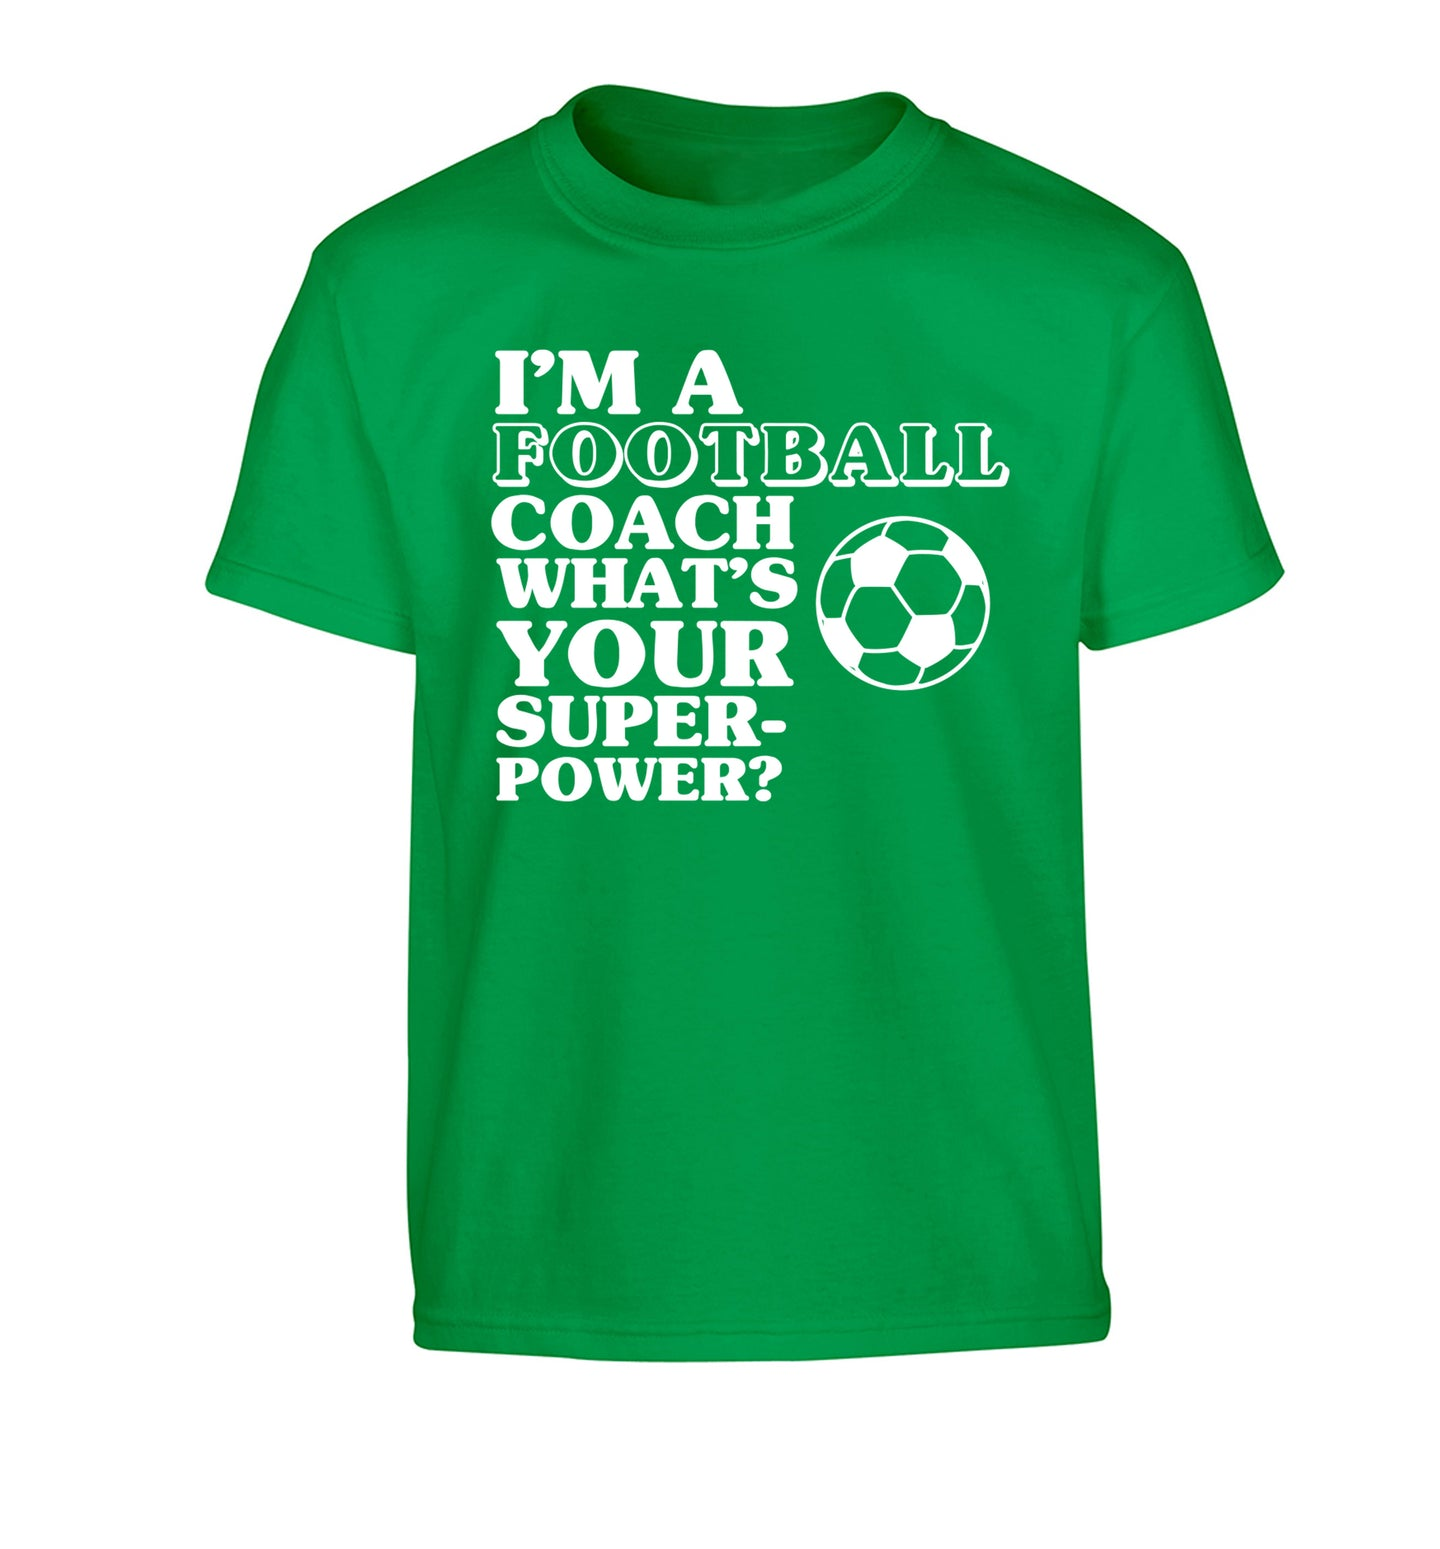 I'm a football coach what's your superpower? Children's green Tshirt 12-14 Years